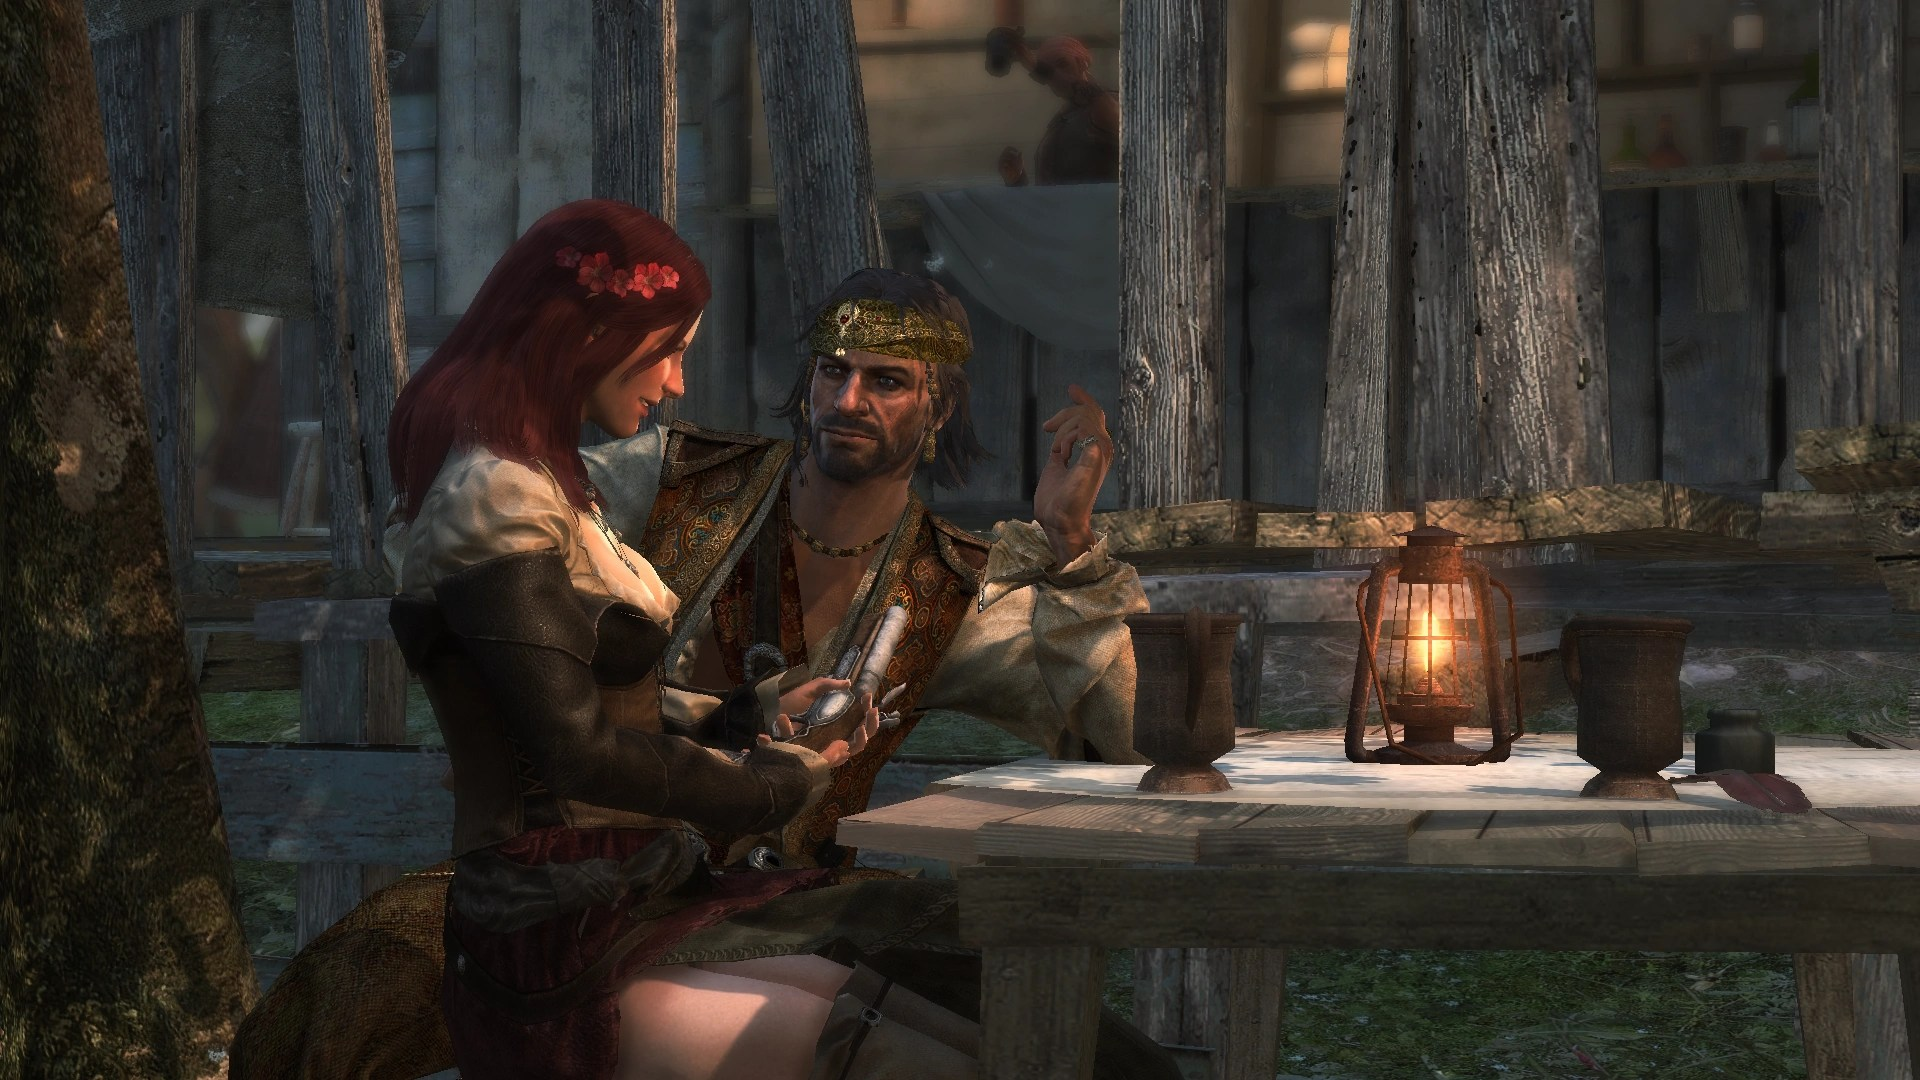 20 Ac Black Flag Anne Bonny Pictures And Ideas On Meta Networks